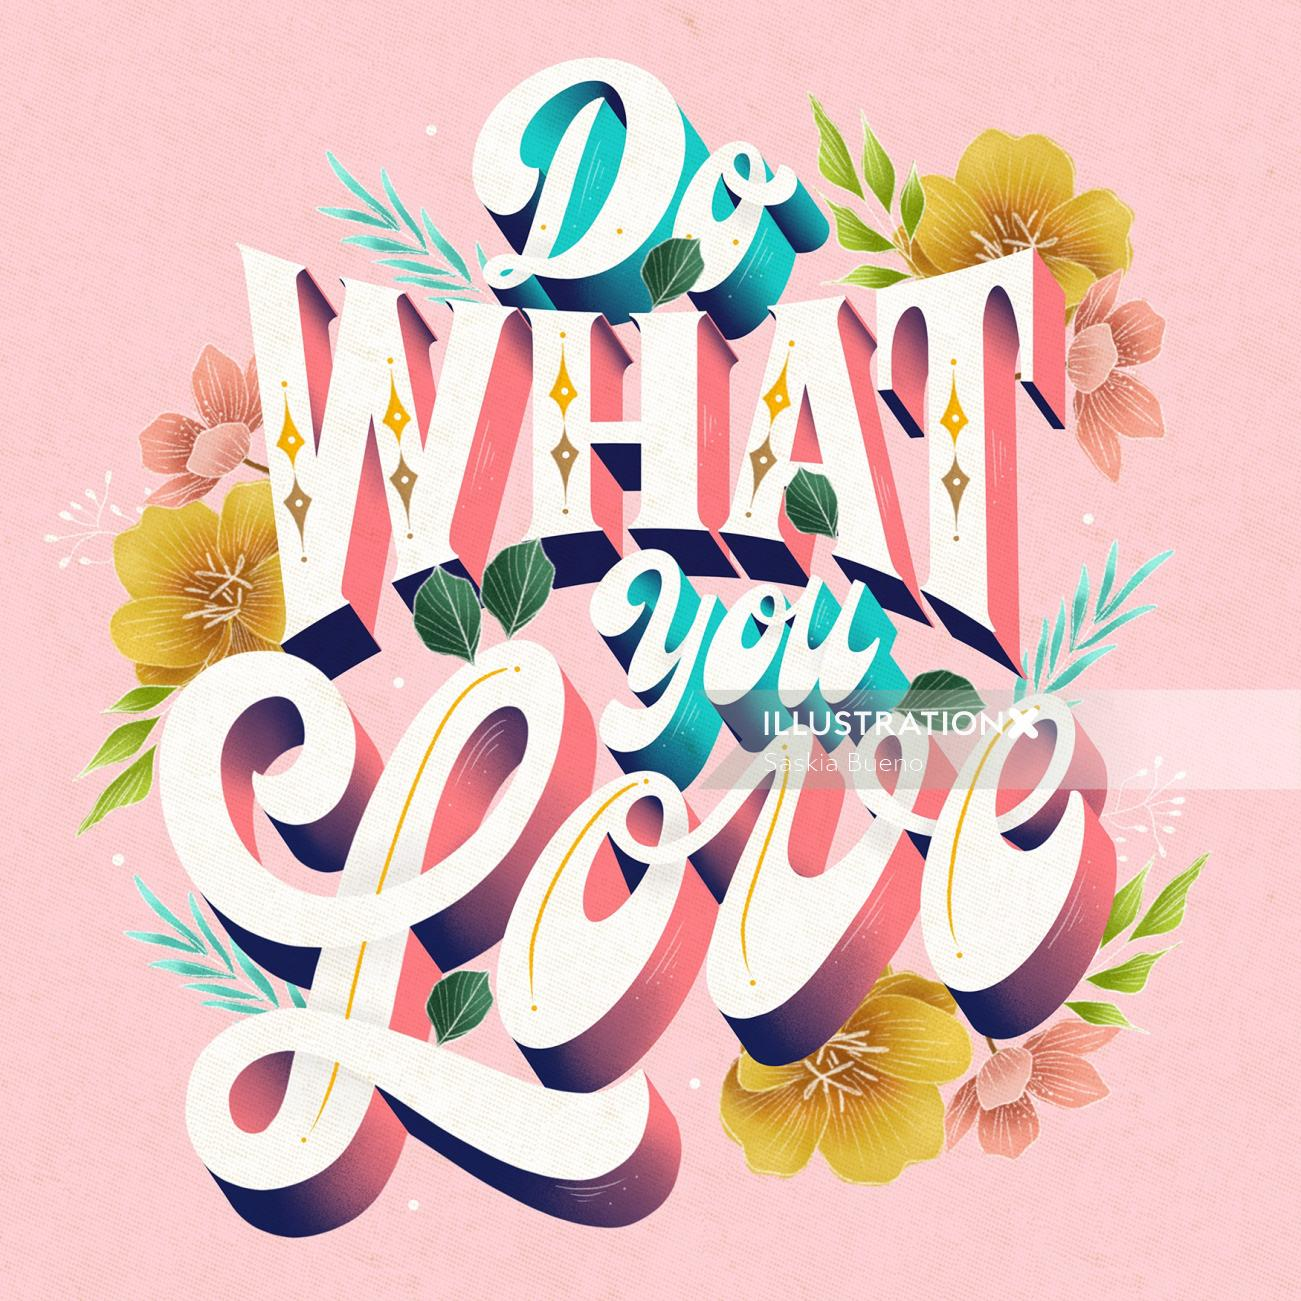 Lettering art of do what you love